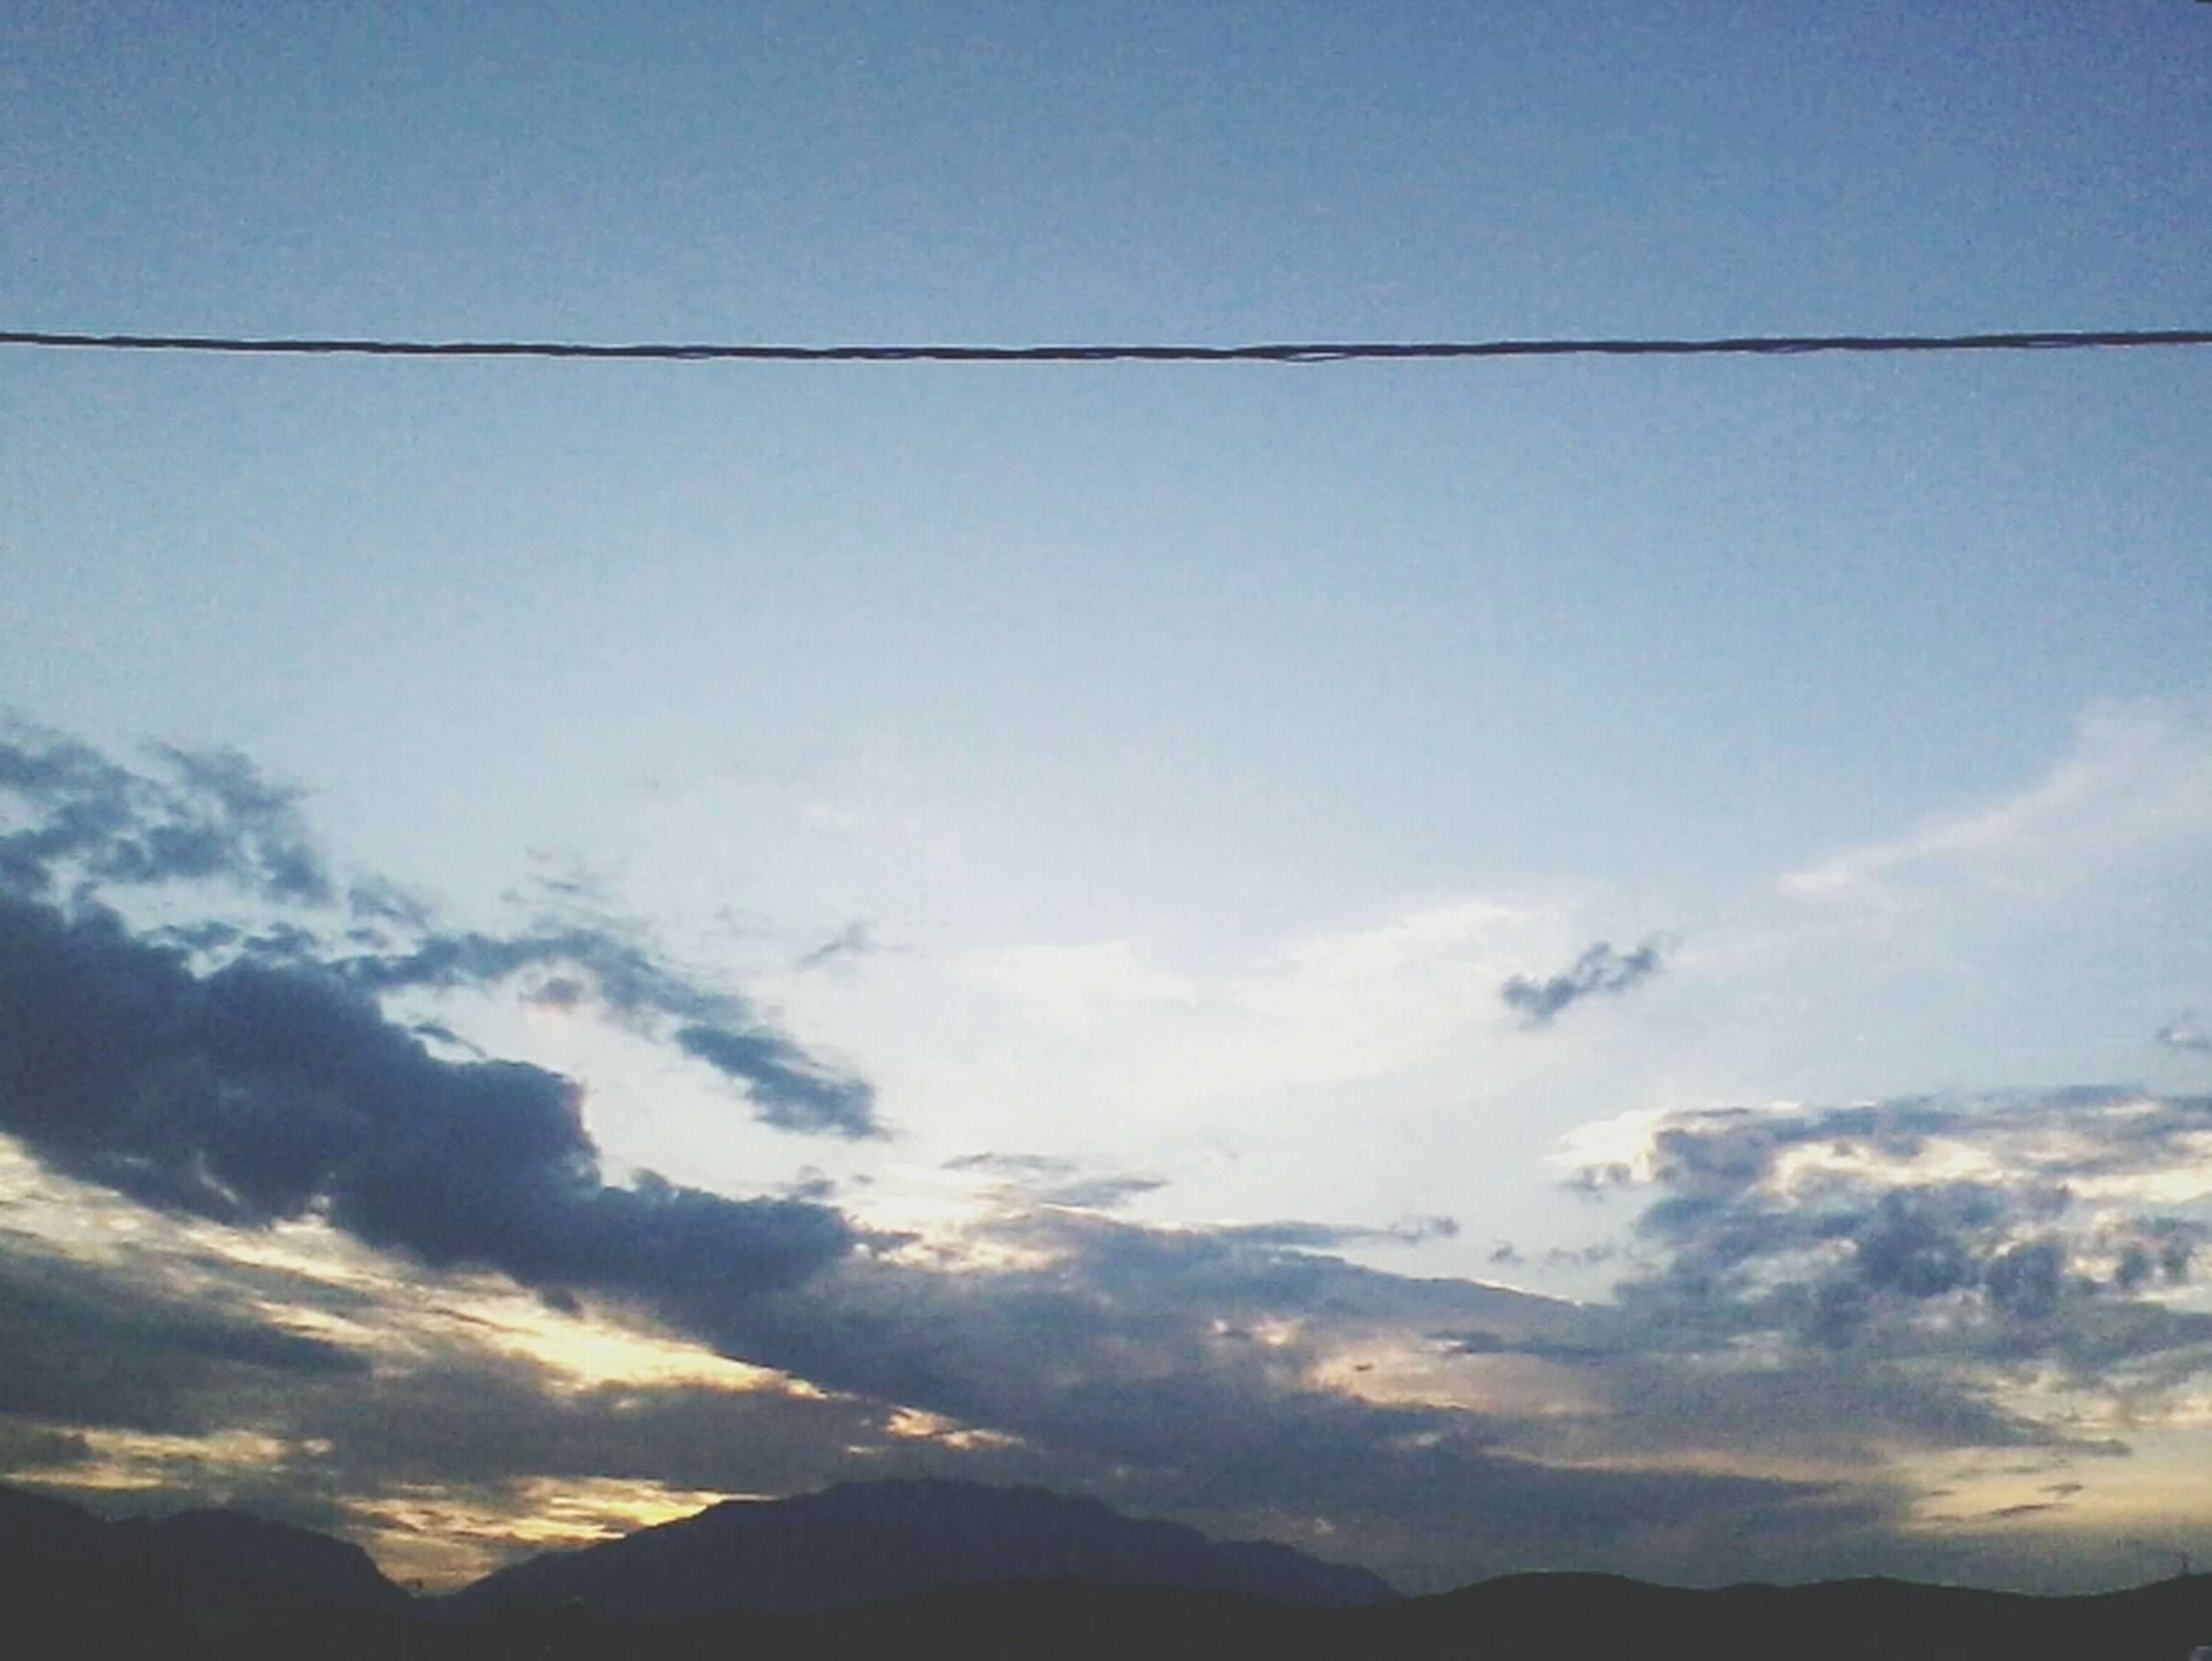 sky, tranquil scene, tranquility, scenics, beauty in nature, mountain, landscape, nature, cloud - sky, silhouette, cloud, blue, idyllic, low angle view, mountain range, sunset, outdoors, no people, copy space, non-urban scene